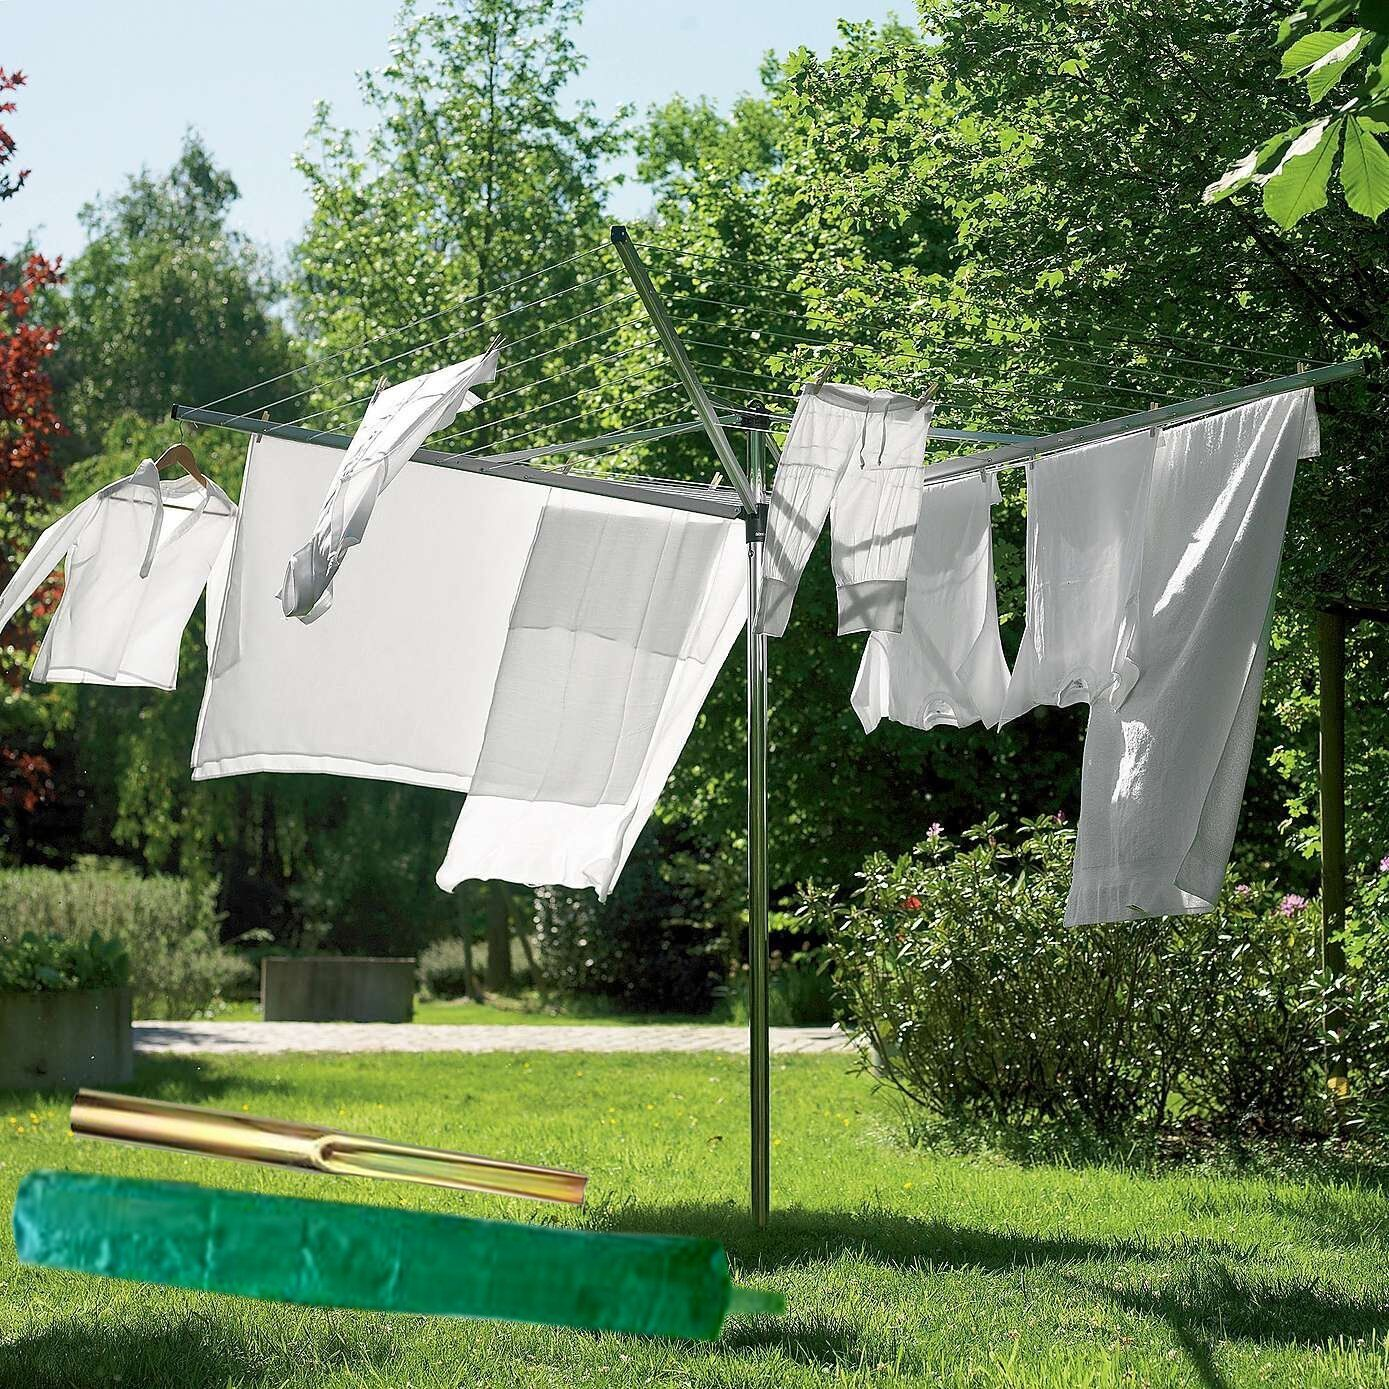 NEW 4 ARM ROTARY GARDEN WASHING LINE CLOTHES AIRER DRYER